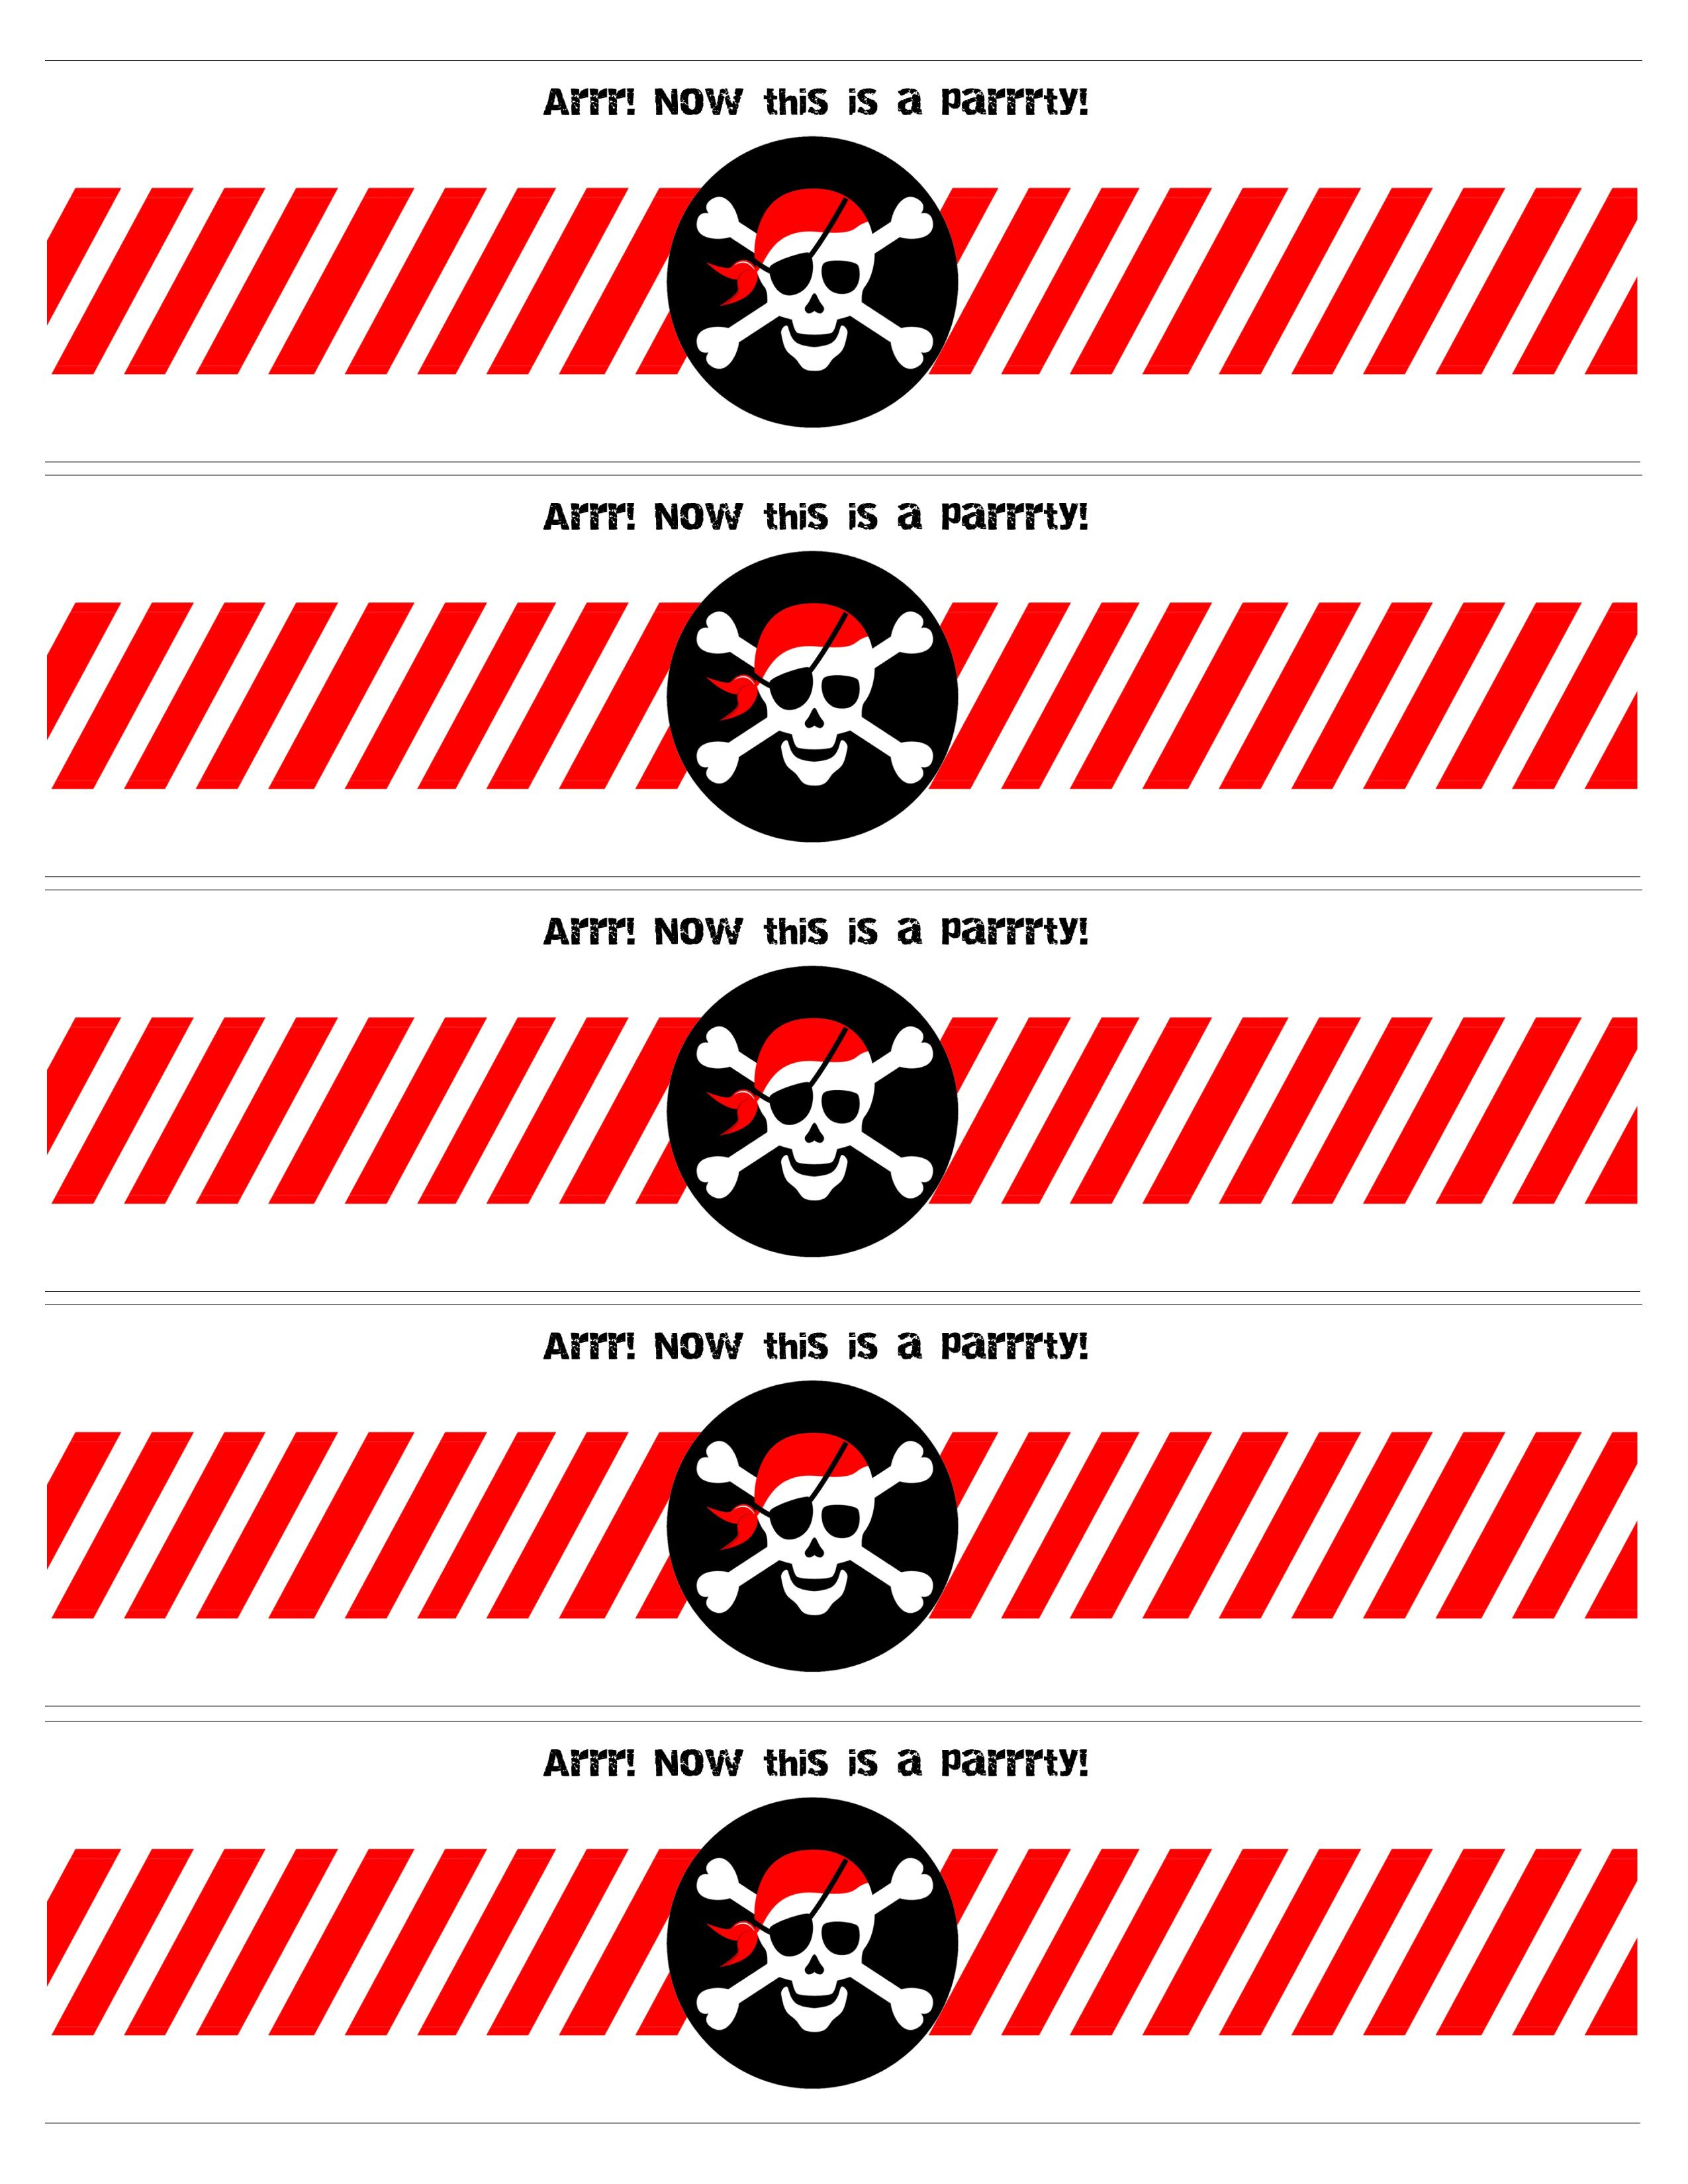 Pirate Themed Birthday Party with FREE Printables | Piratenparty ...